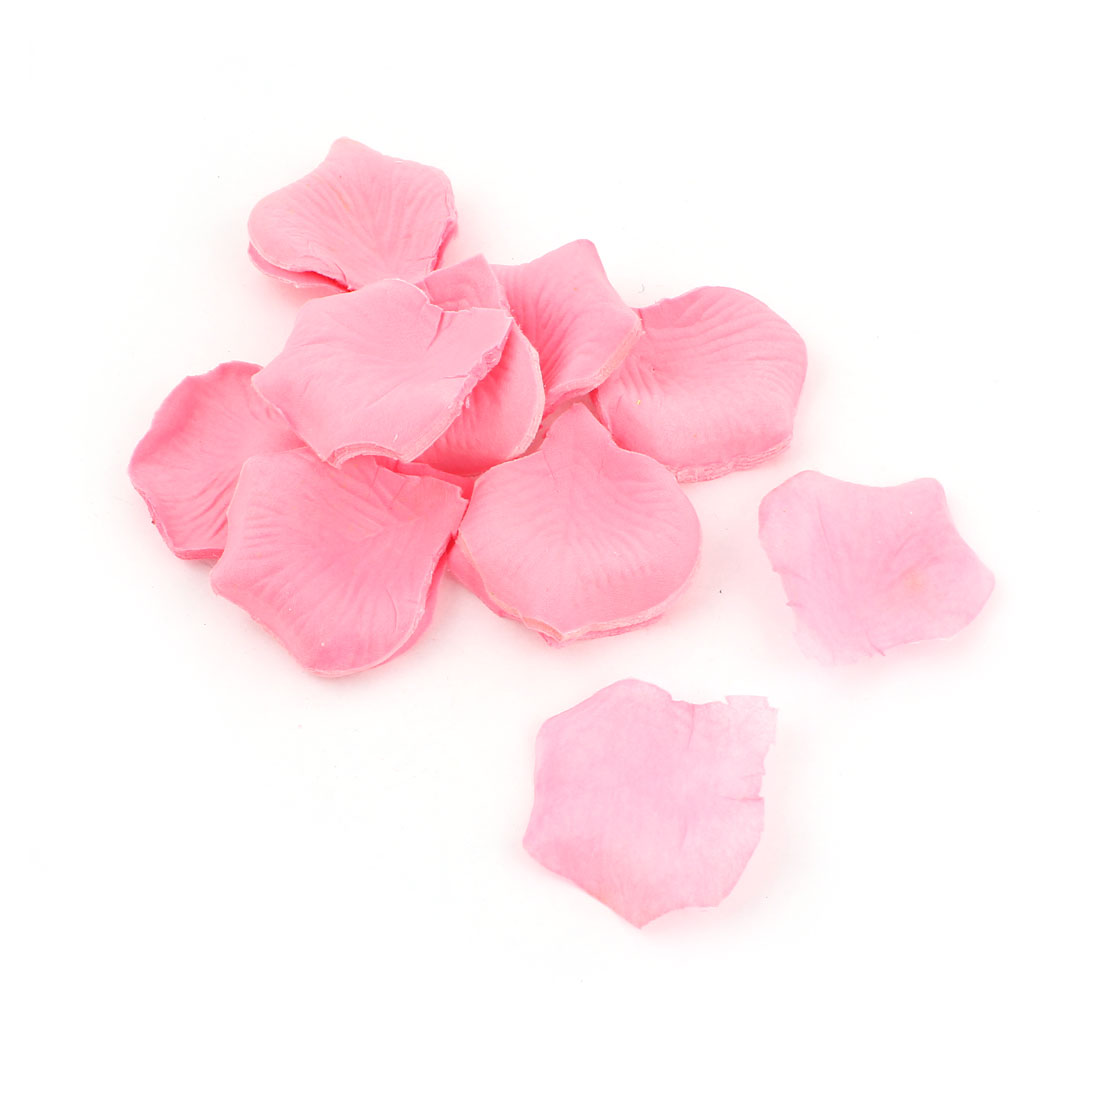 200 Pcs Wedding Festival House Accent Artificial Fabric Rose Petals Pink